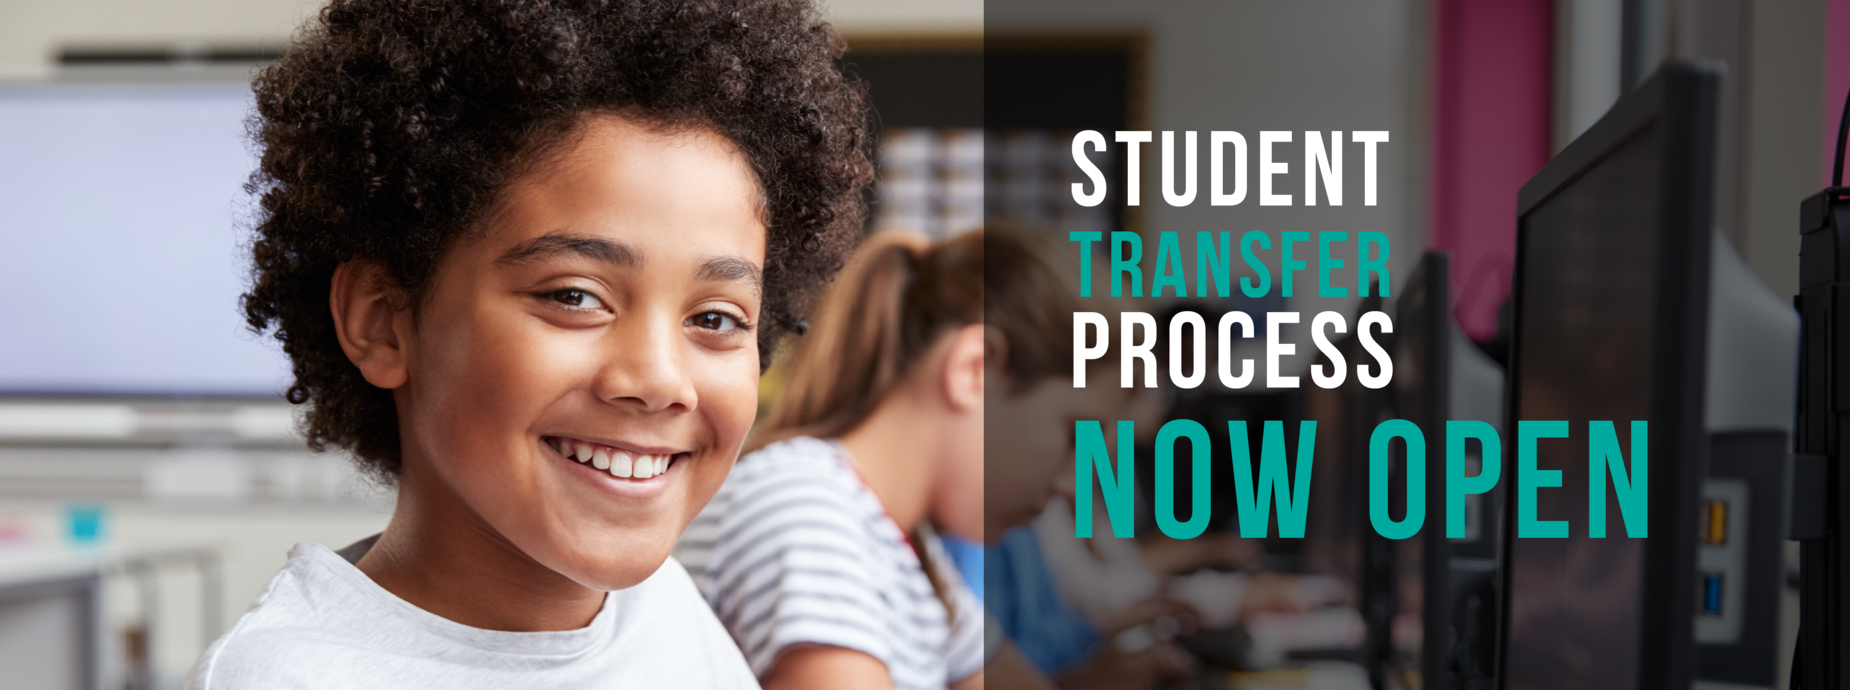 Student Transfer Process Now Open